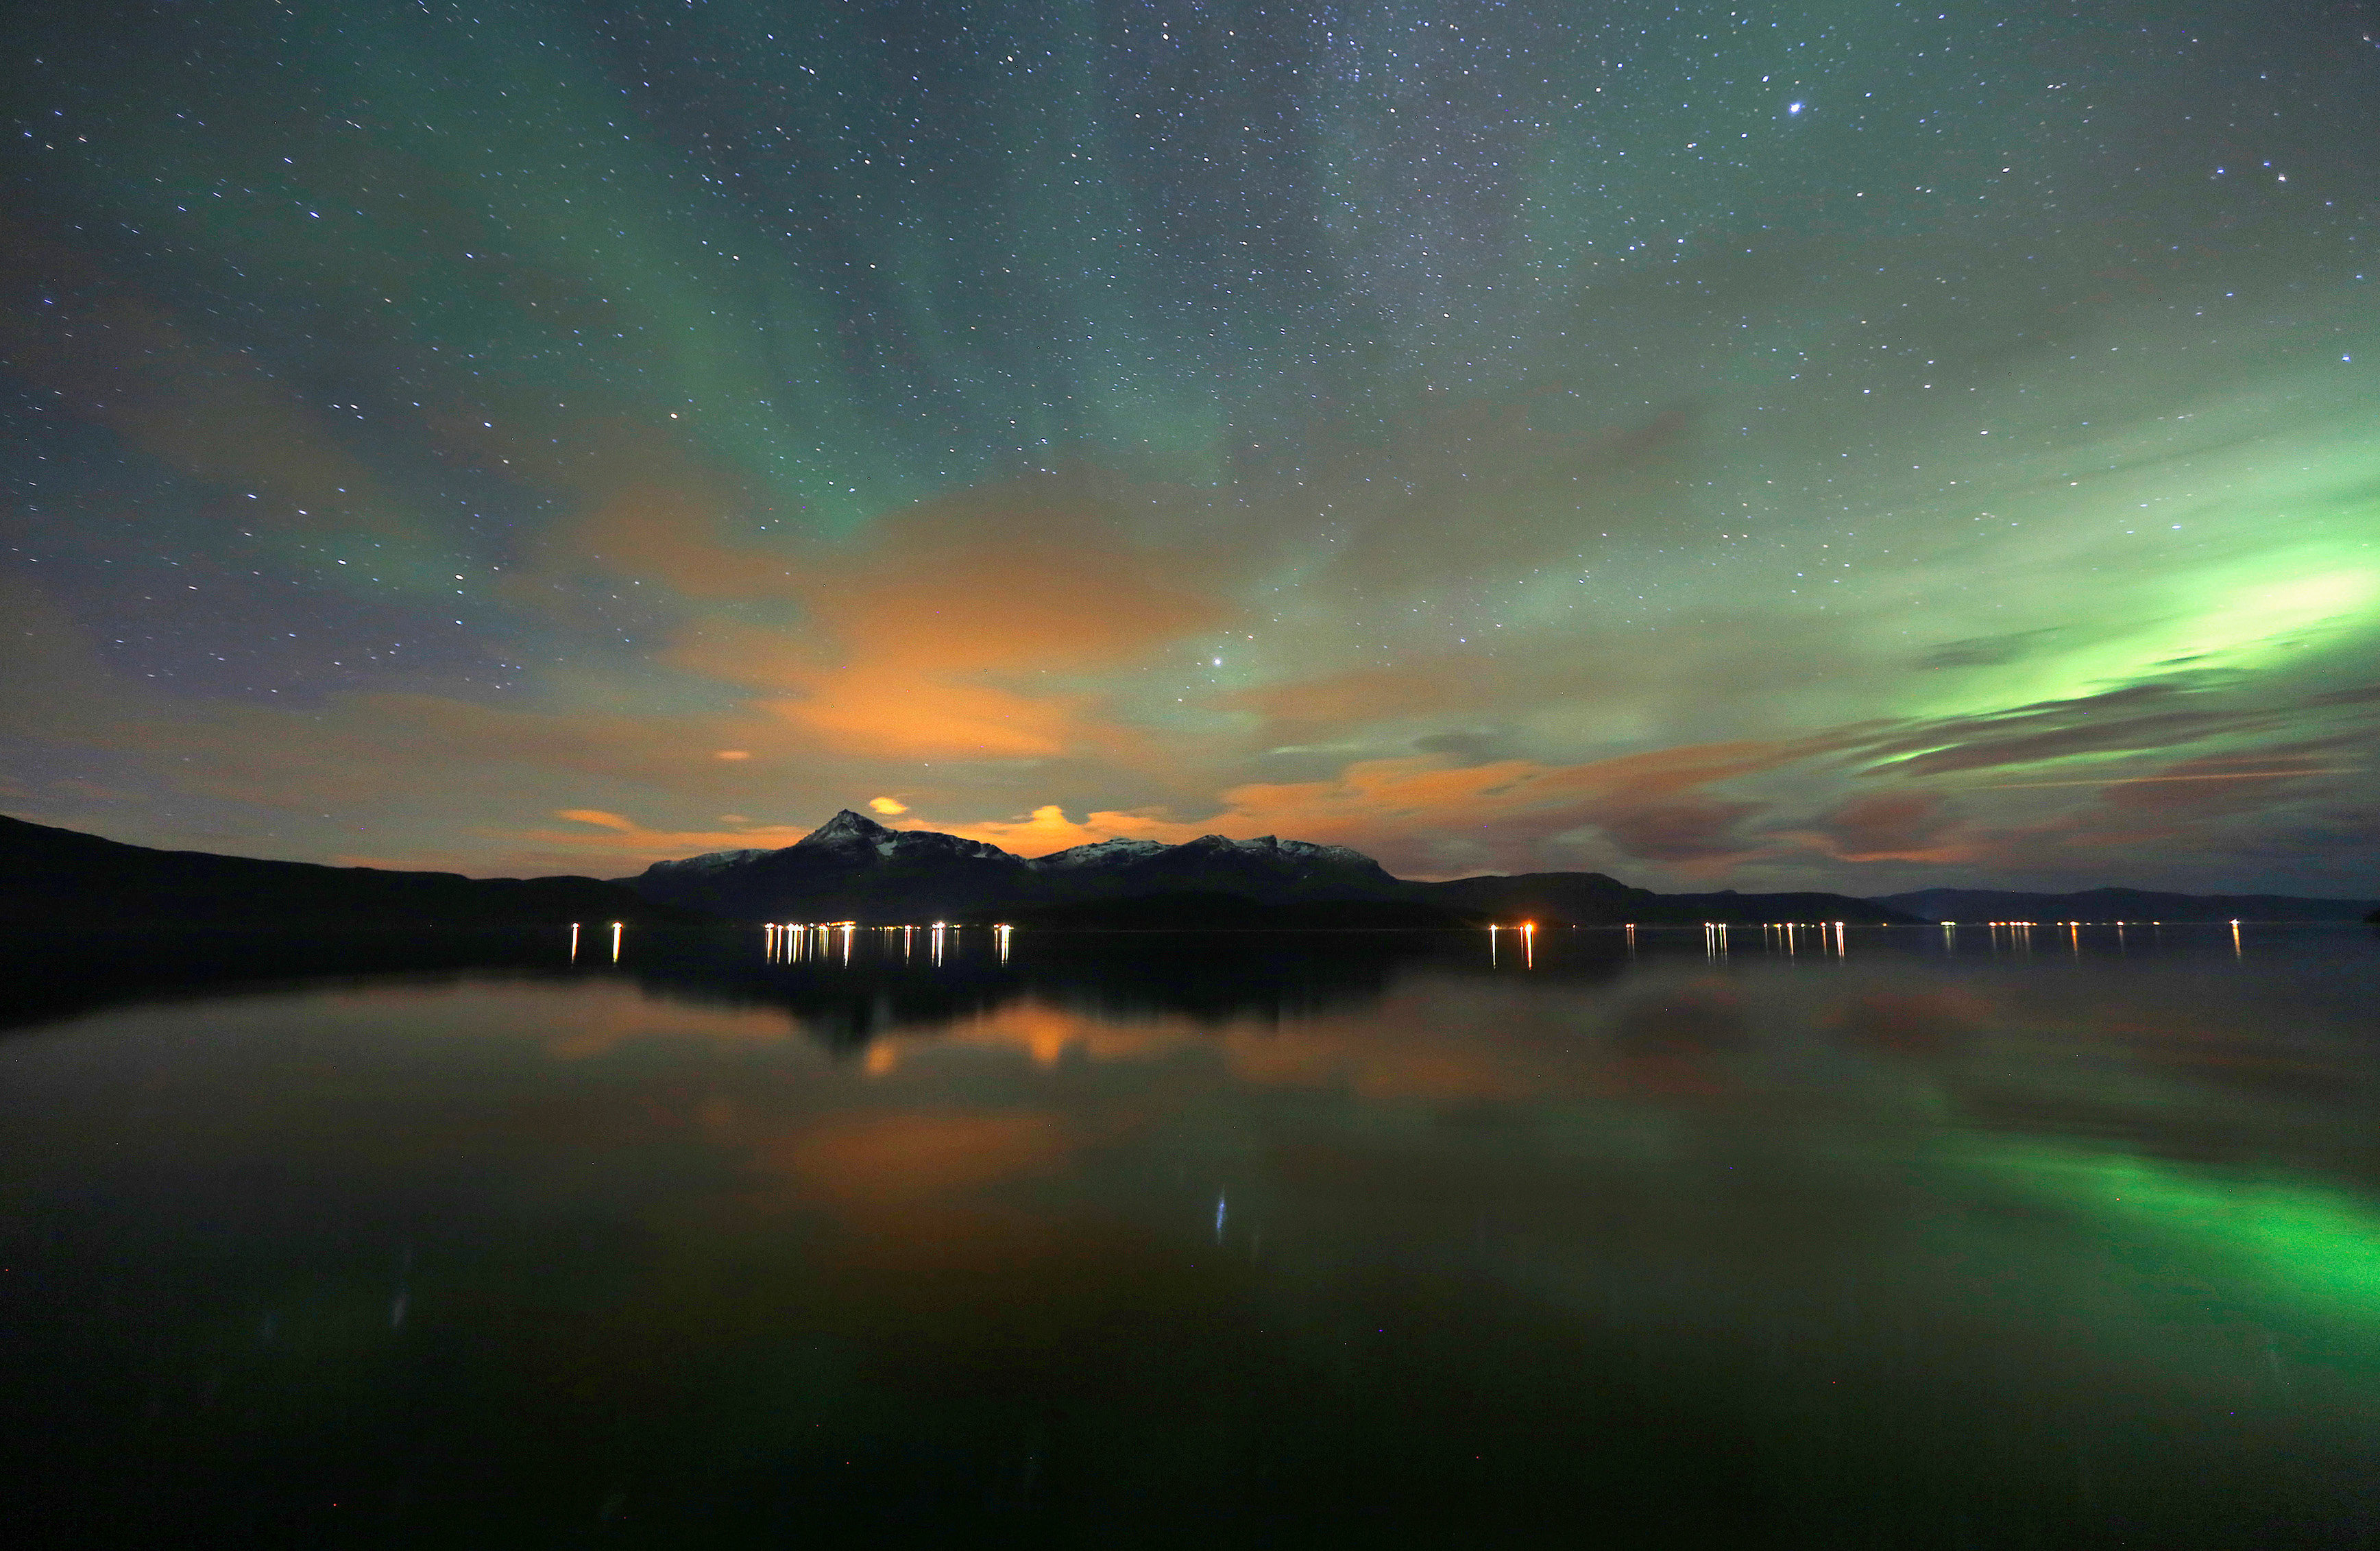 FILE PHOTO - The Aurora Borealis (Northern Lights) is seen over the Bals-Fiord near the village of Mestervik, north of the Arctic Circle, early October 2, 2014.  REUTERS/Yannis Behrakis/File Photo